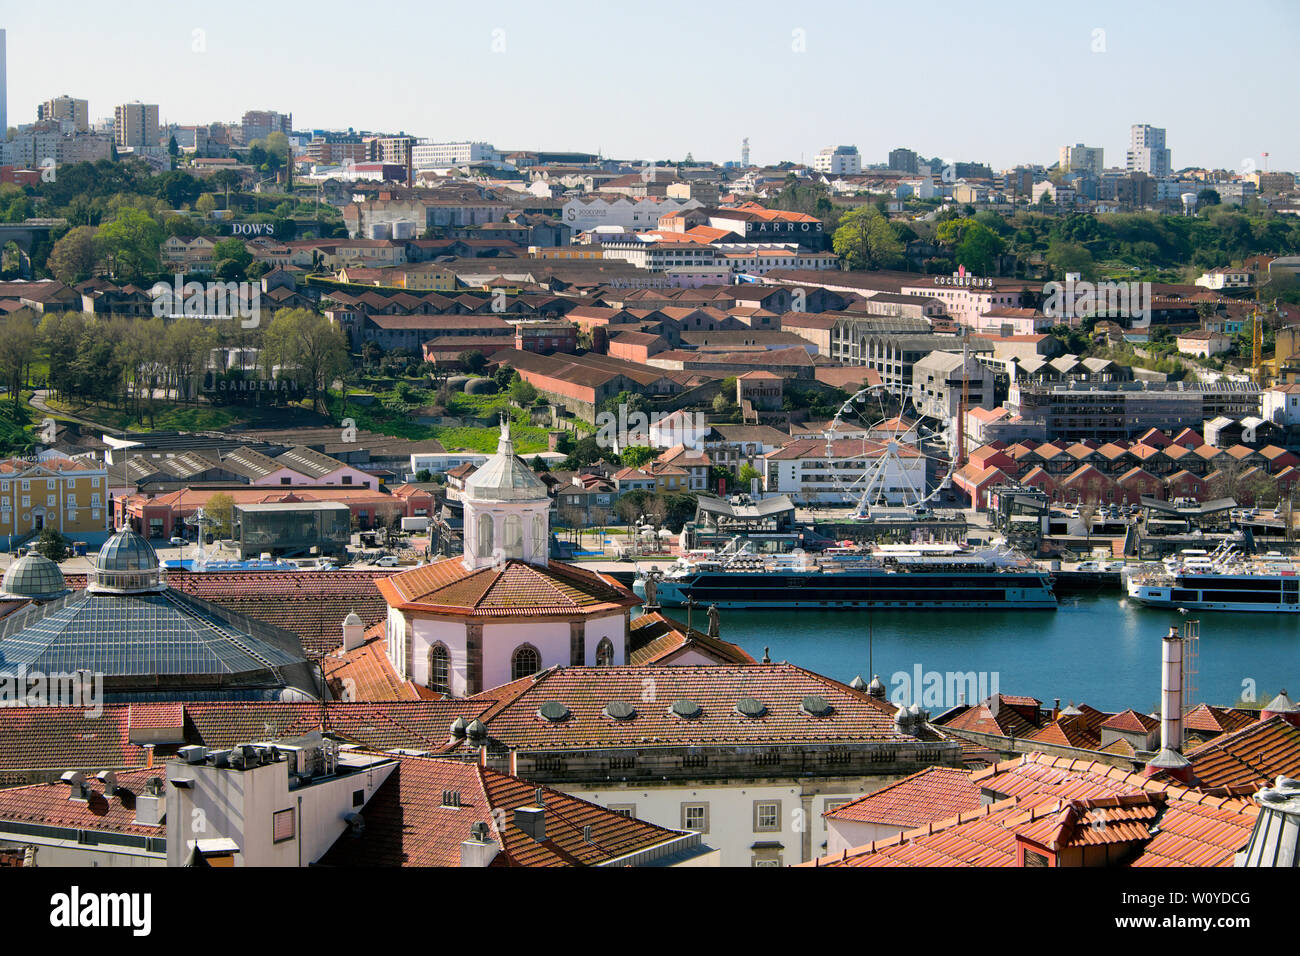 A view of the port wine lodges on Vila Nova de Gaia side of River Douro,  tourist ships & roofs of Ribeira Porto Oporto Portugal   KATHY DEWITT Stock Photo